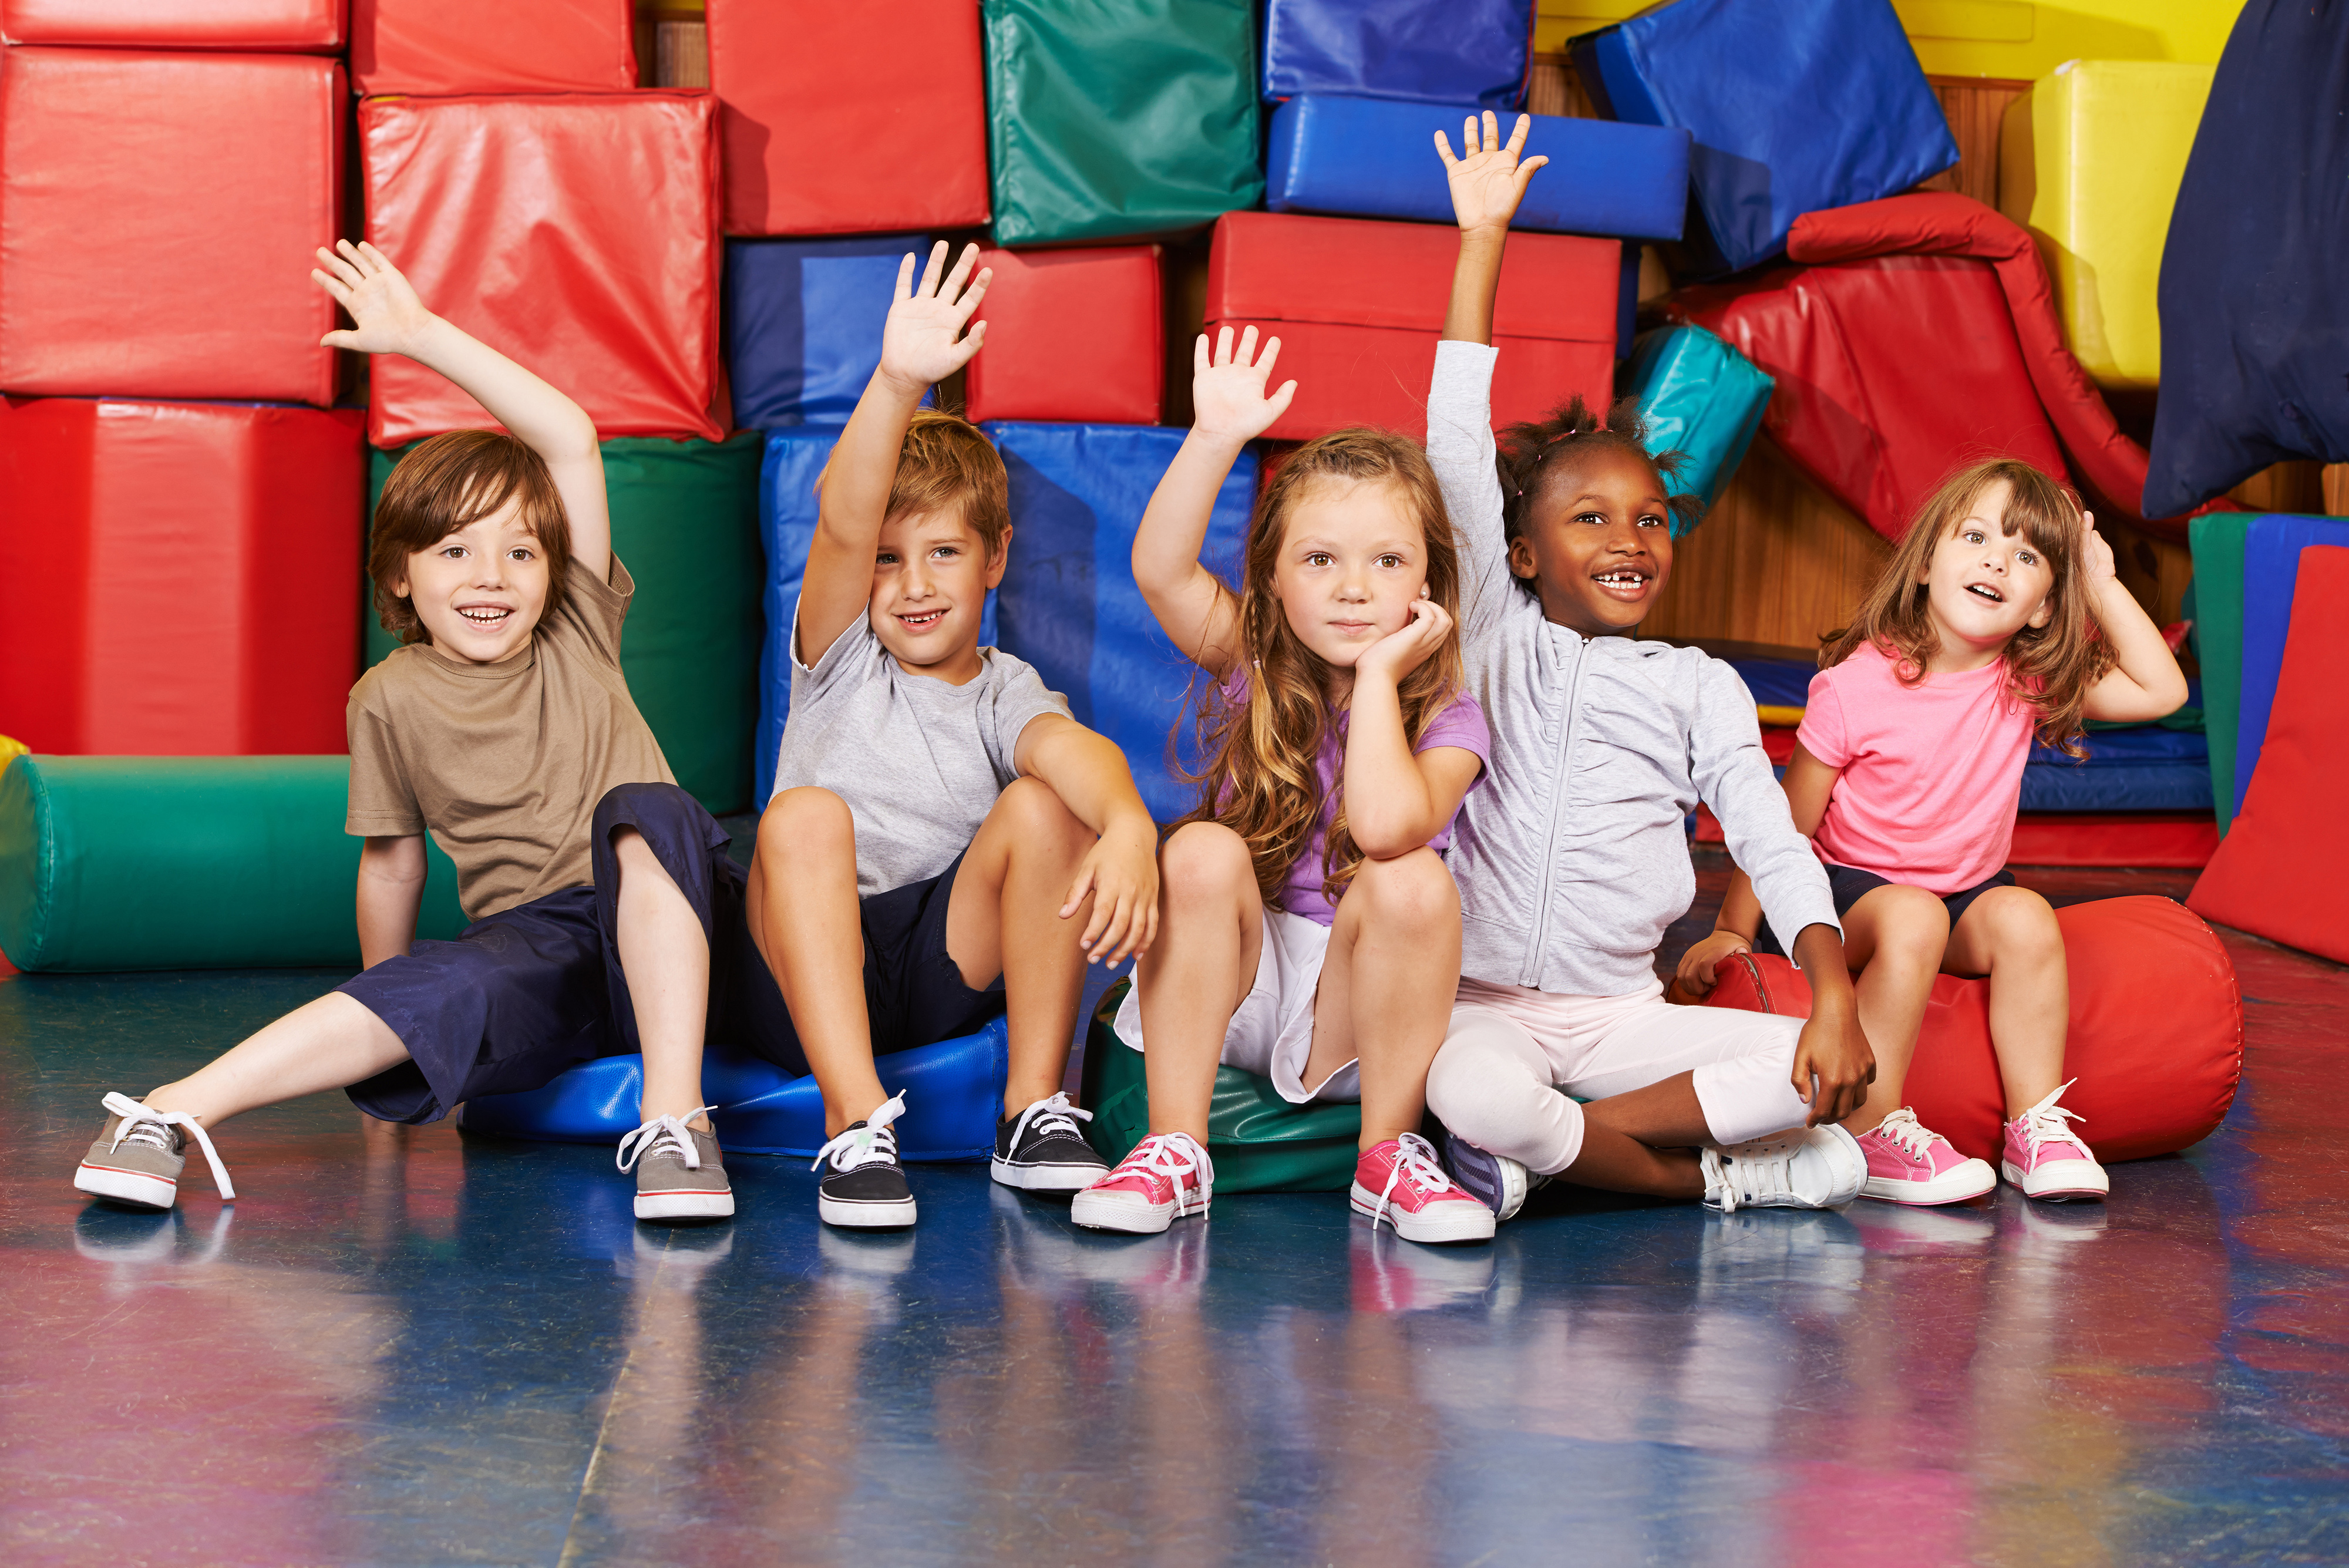 Children raising their hands to answer questions 55433